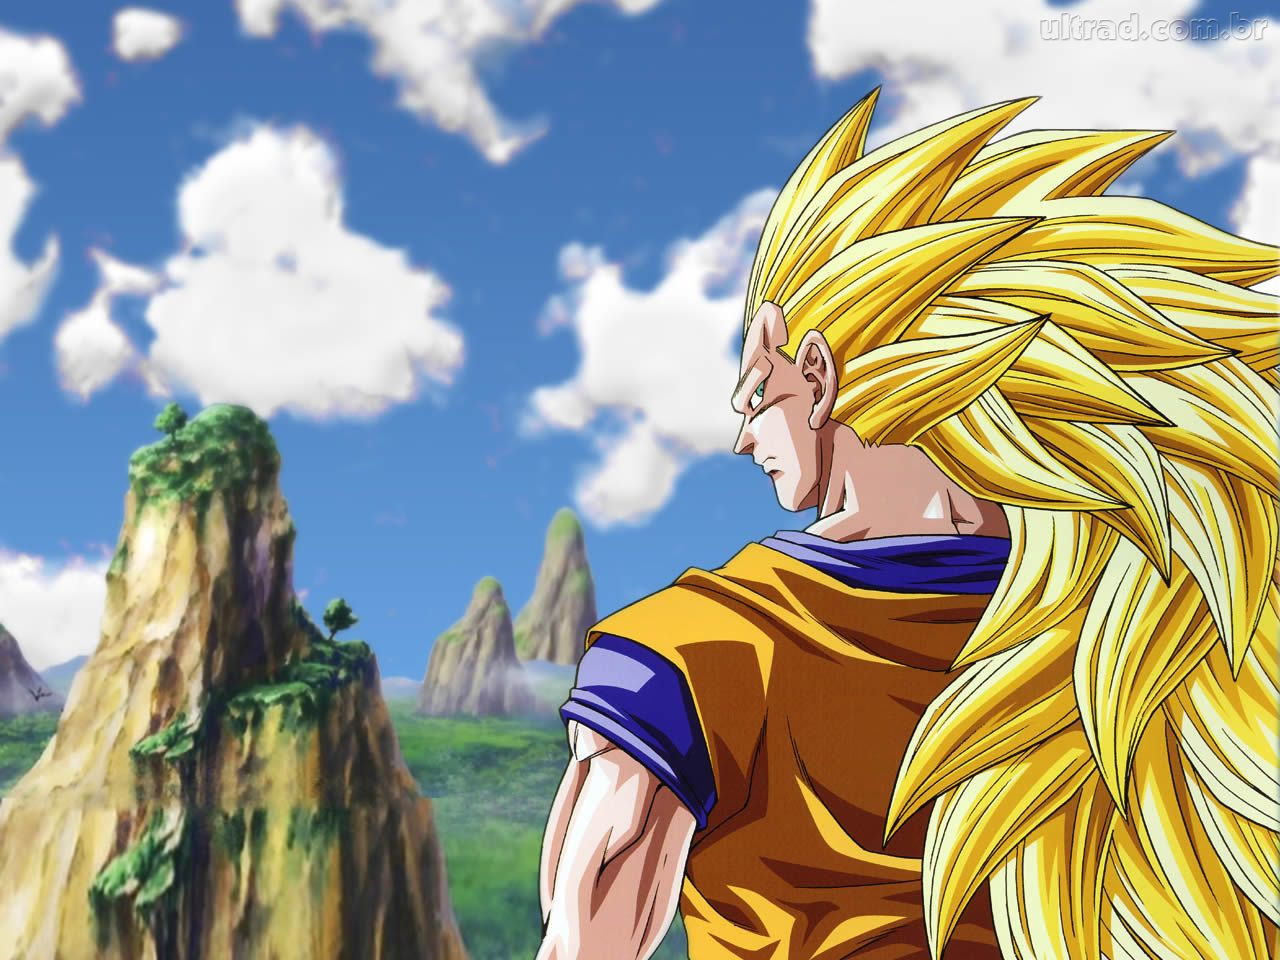 Dragon Ball Z imagens e fotos de Dragon Ball Z wallpaper